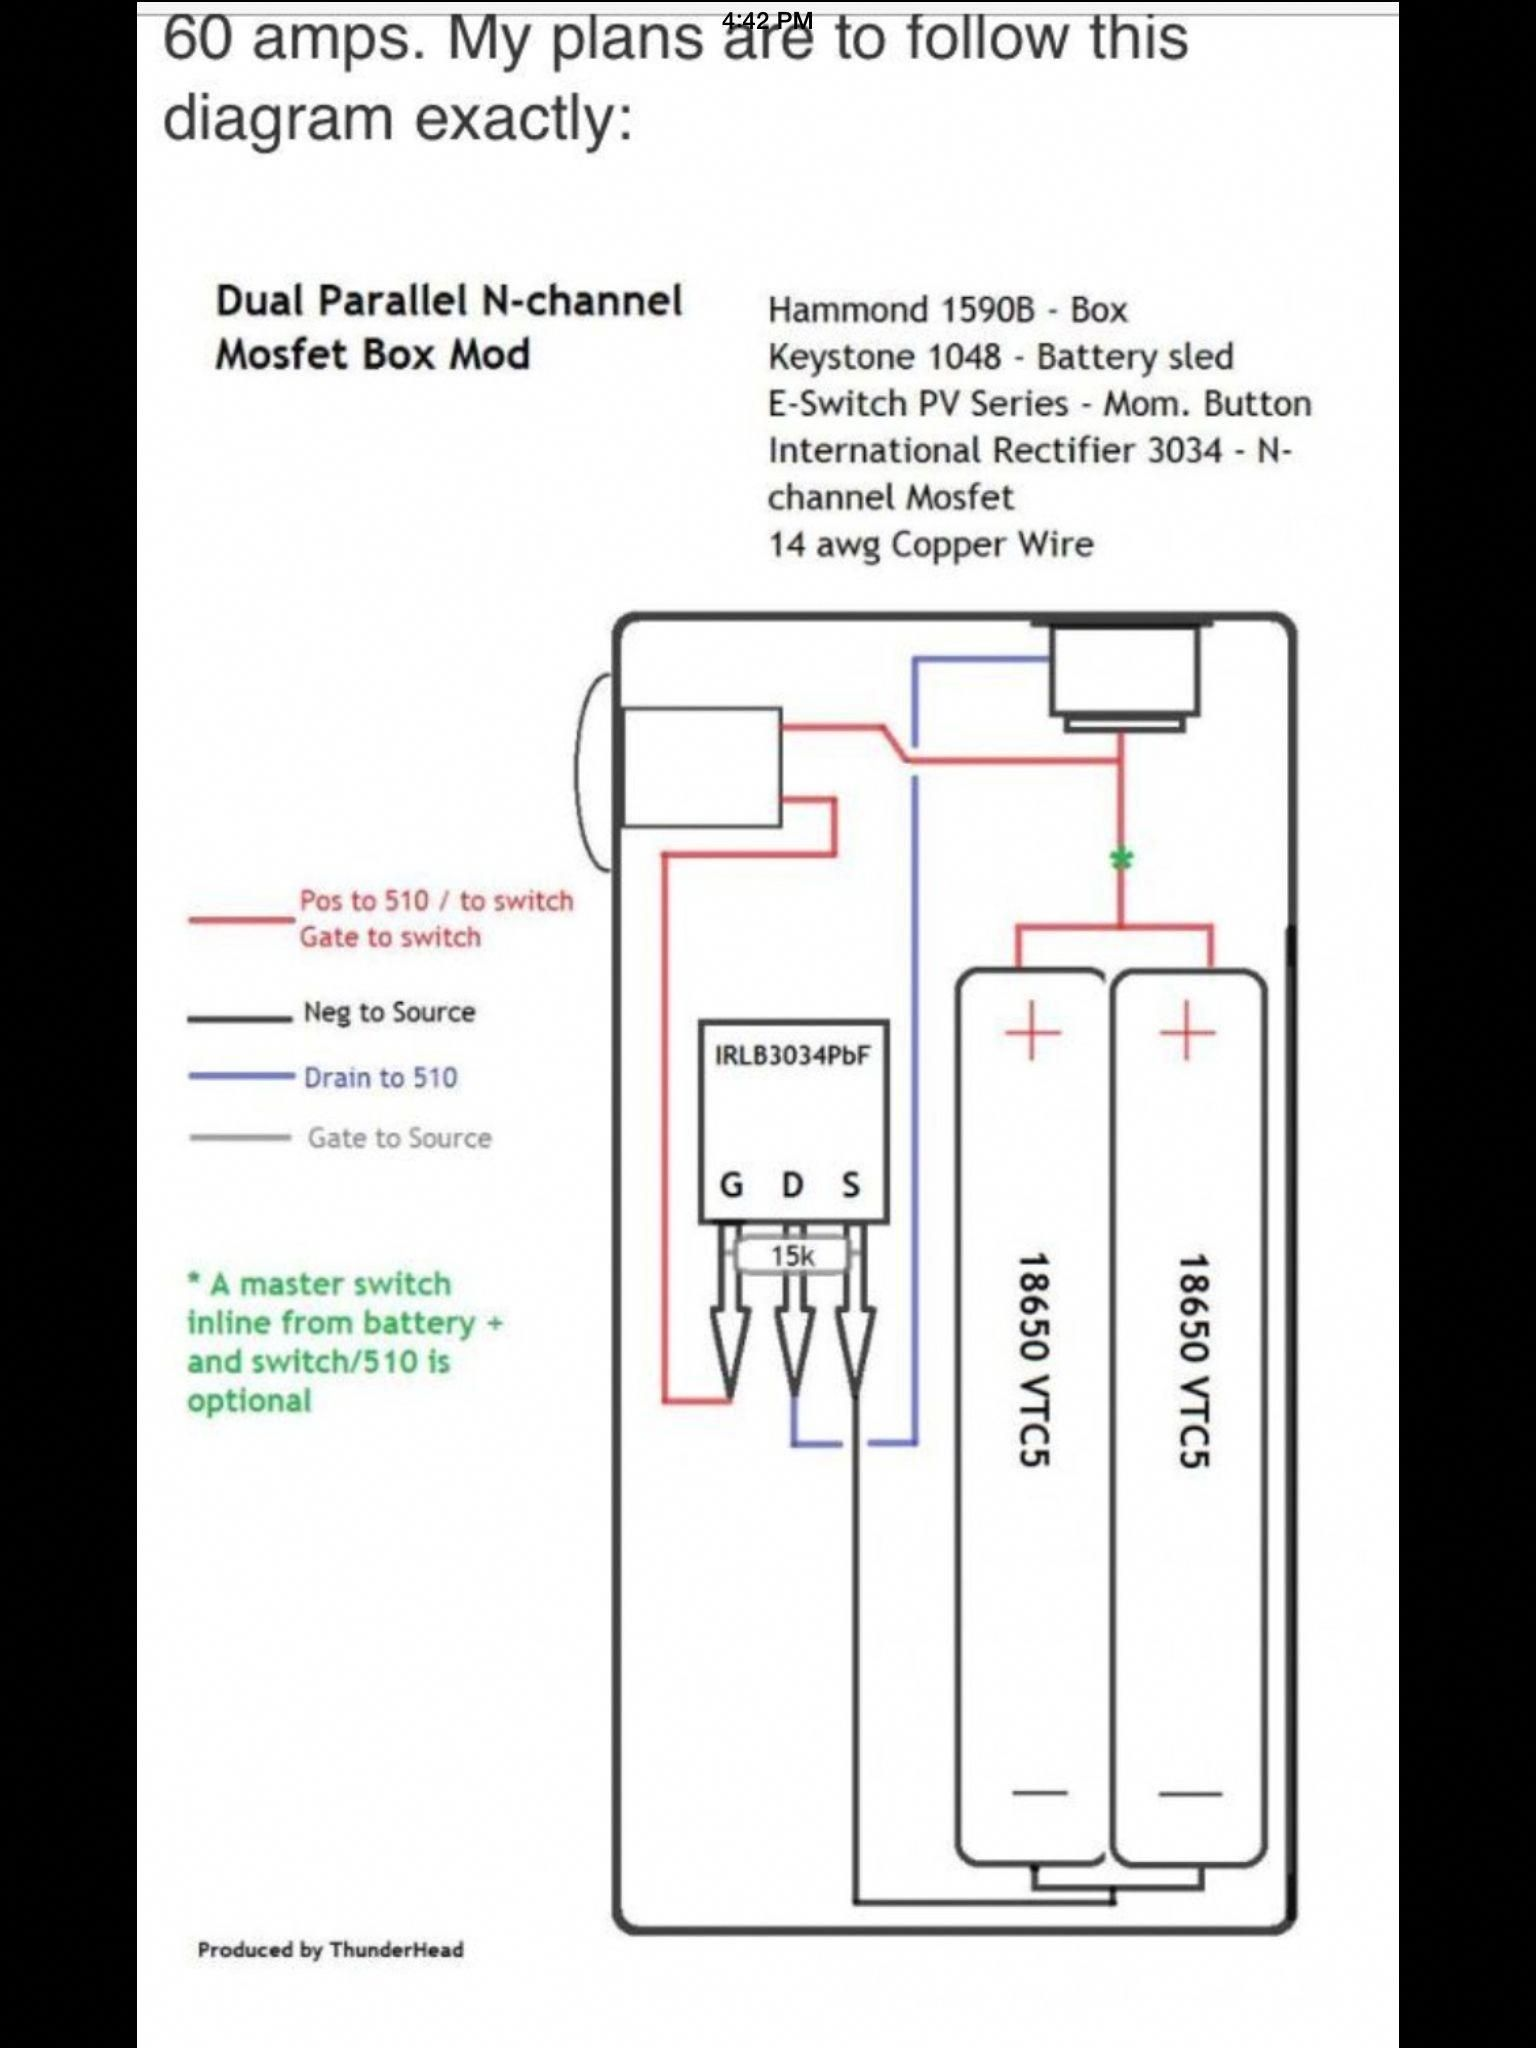 mod box diagram wiring diagram load dual parallel mosfet box mod diagram customecigmods e cigs in [ 1536 x 2048 Pixel ]